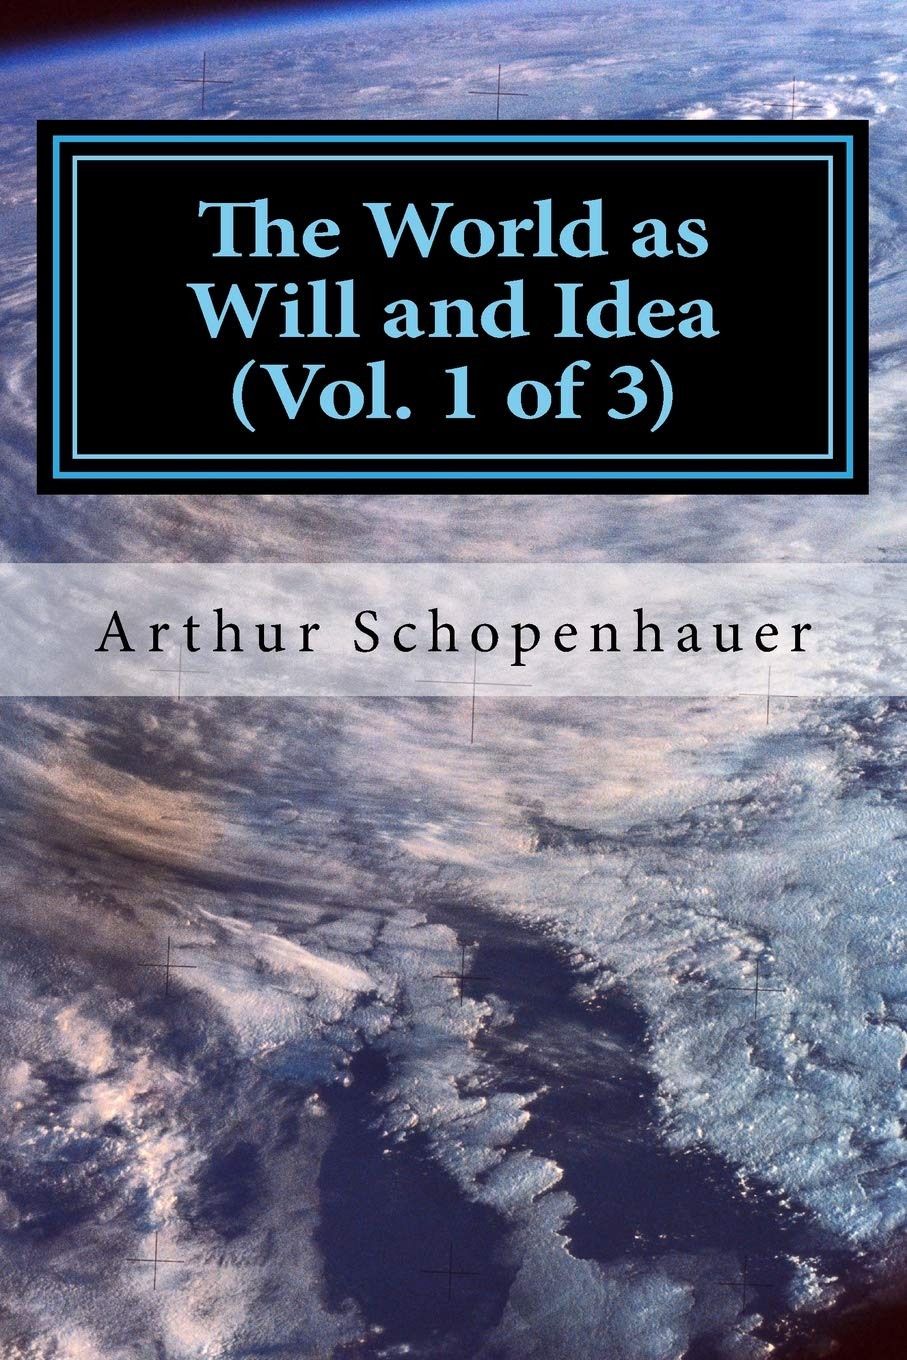 The World as Will and Idea (Vol. 1 of 3)